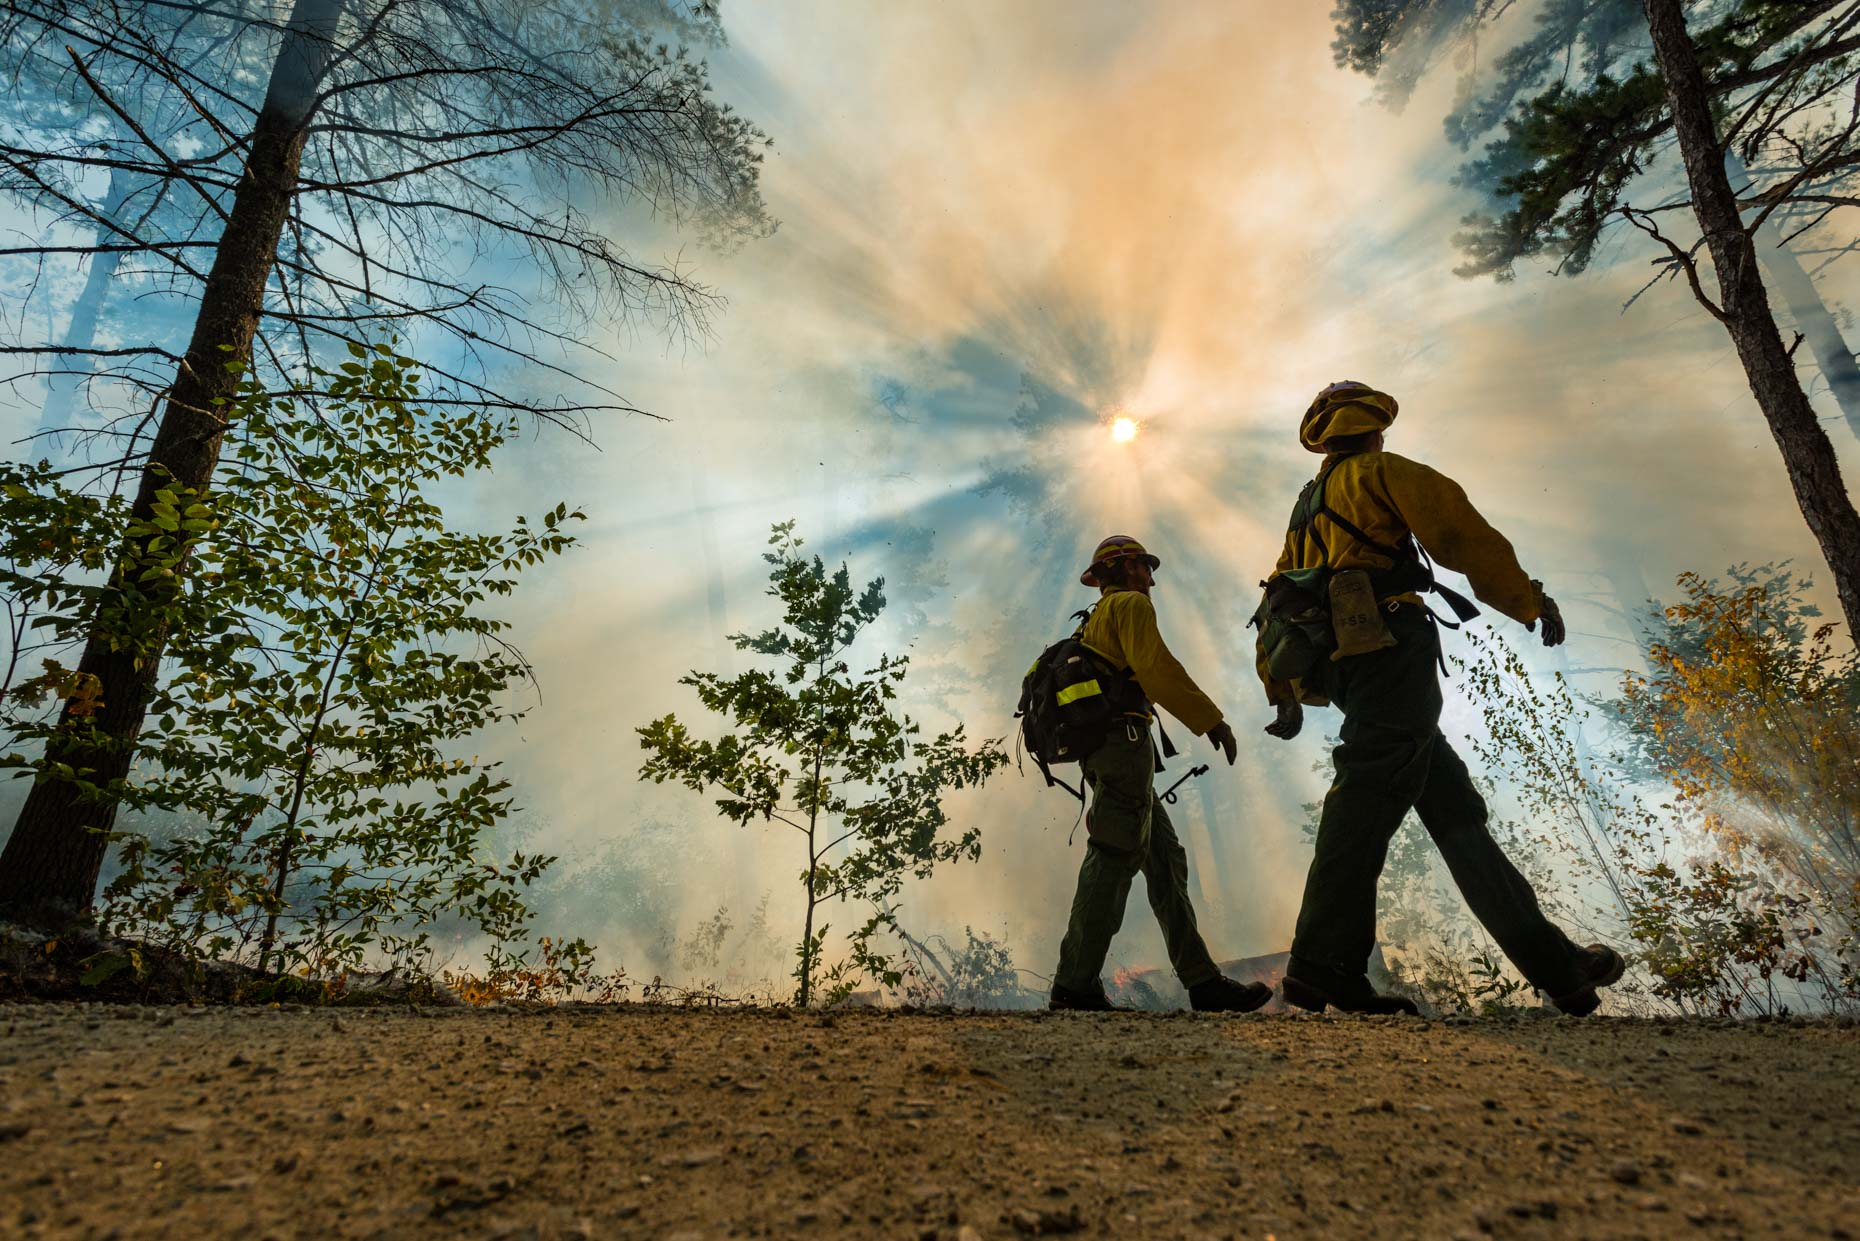 Wildland Fire fighters during a prescribed burn